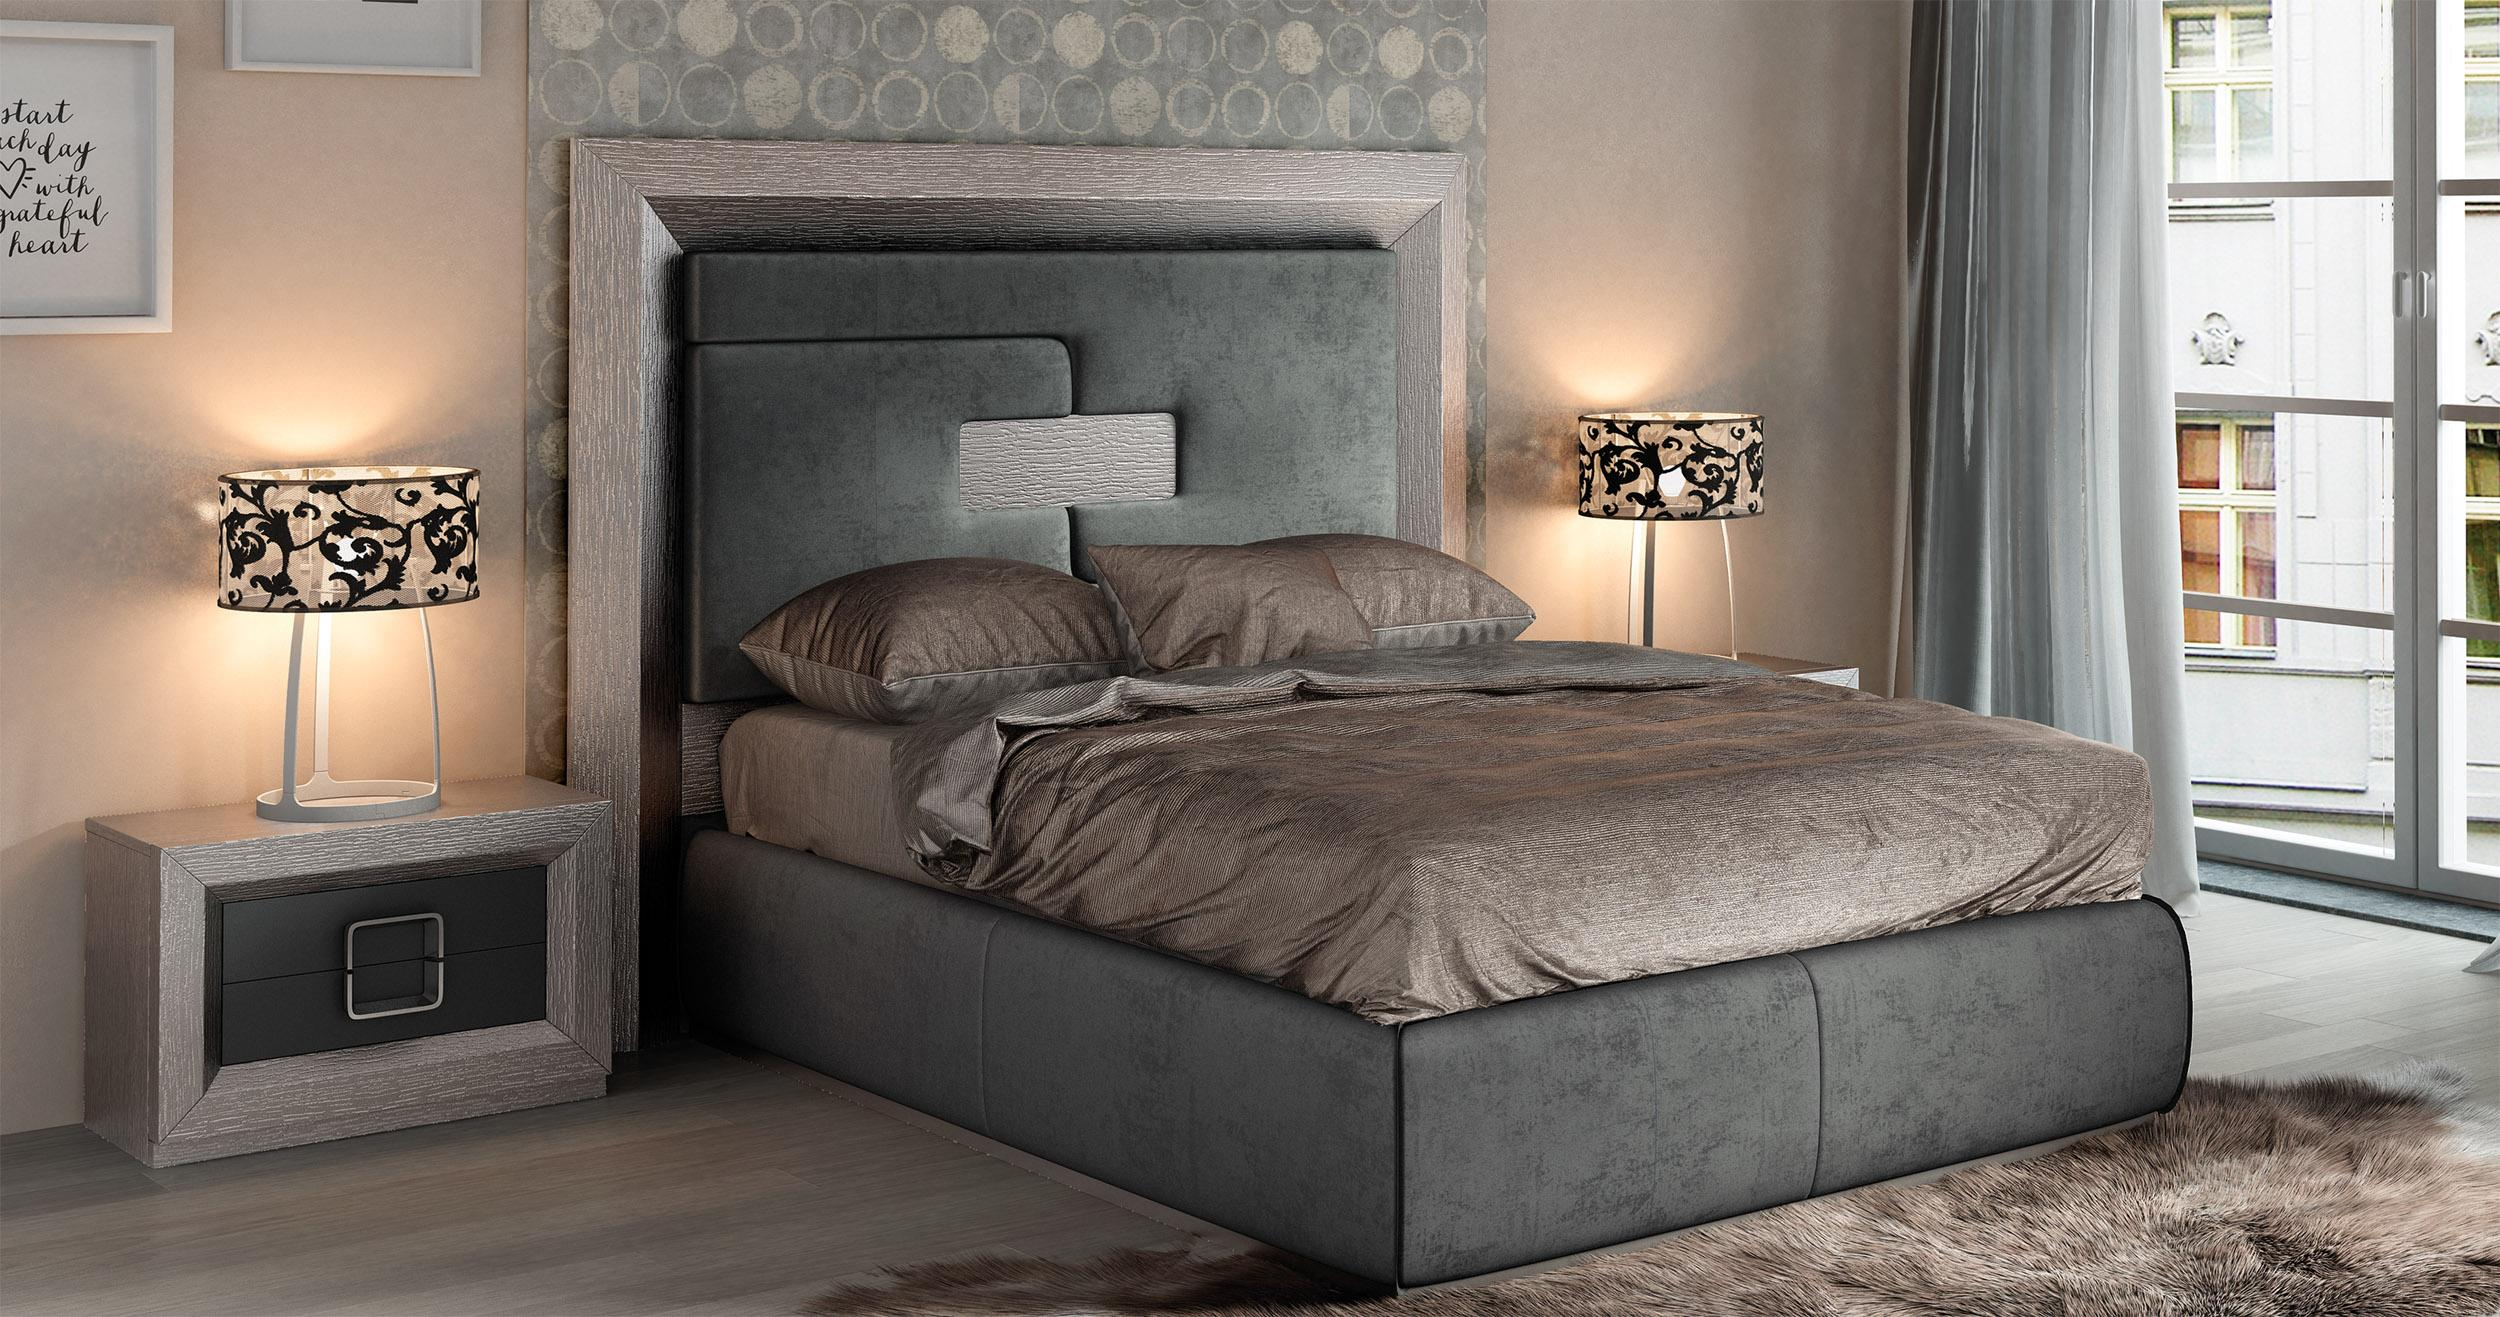 Made in Spain Quality Elite Modern Bedroom Sets with Extra Storage - Click Image to Close